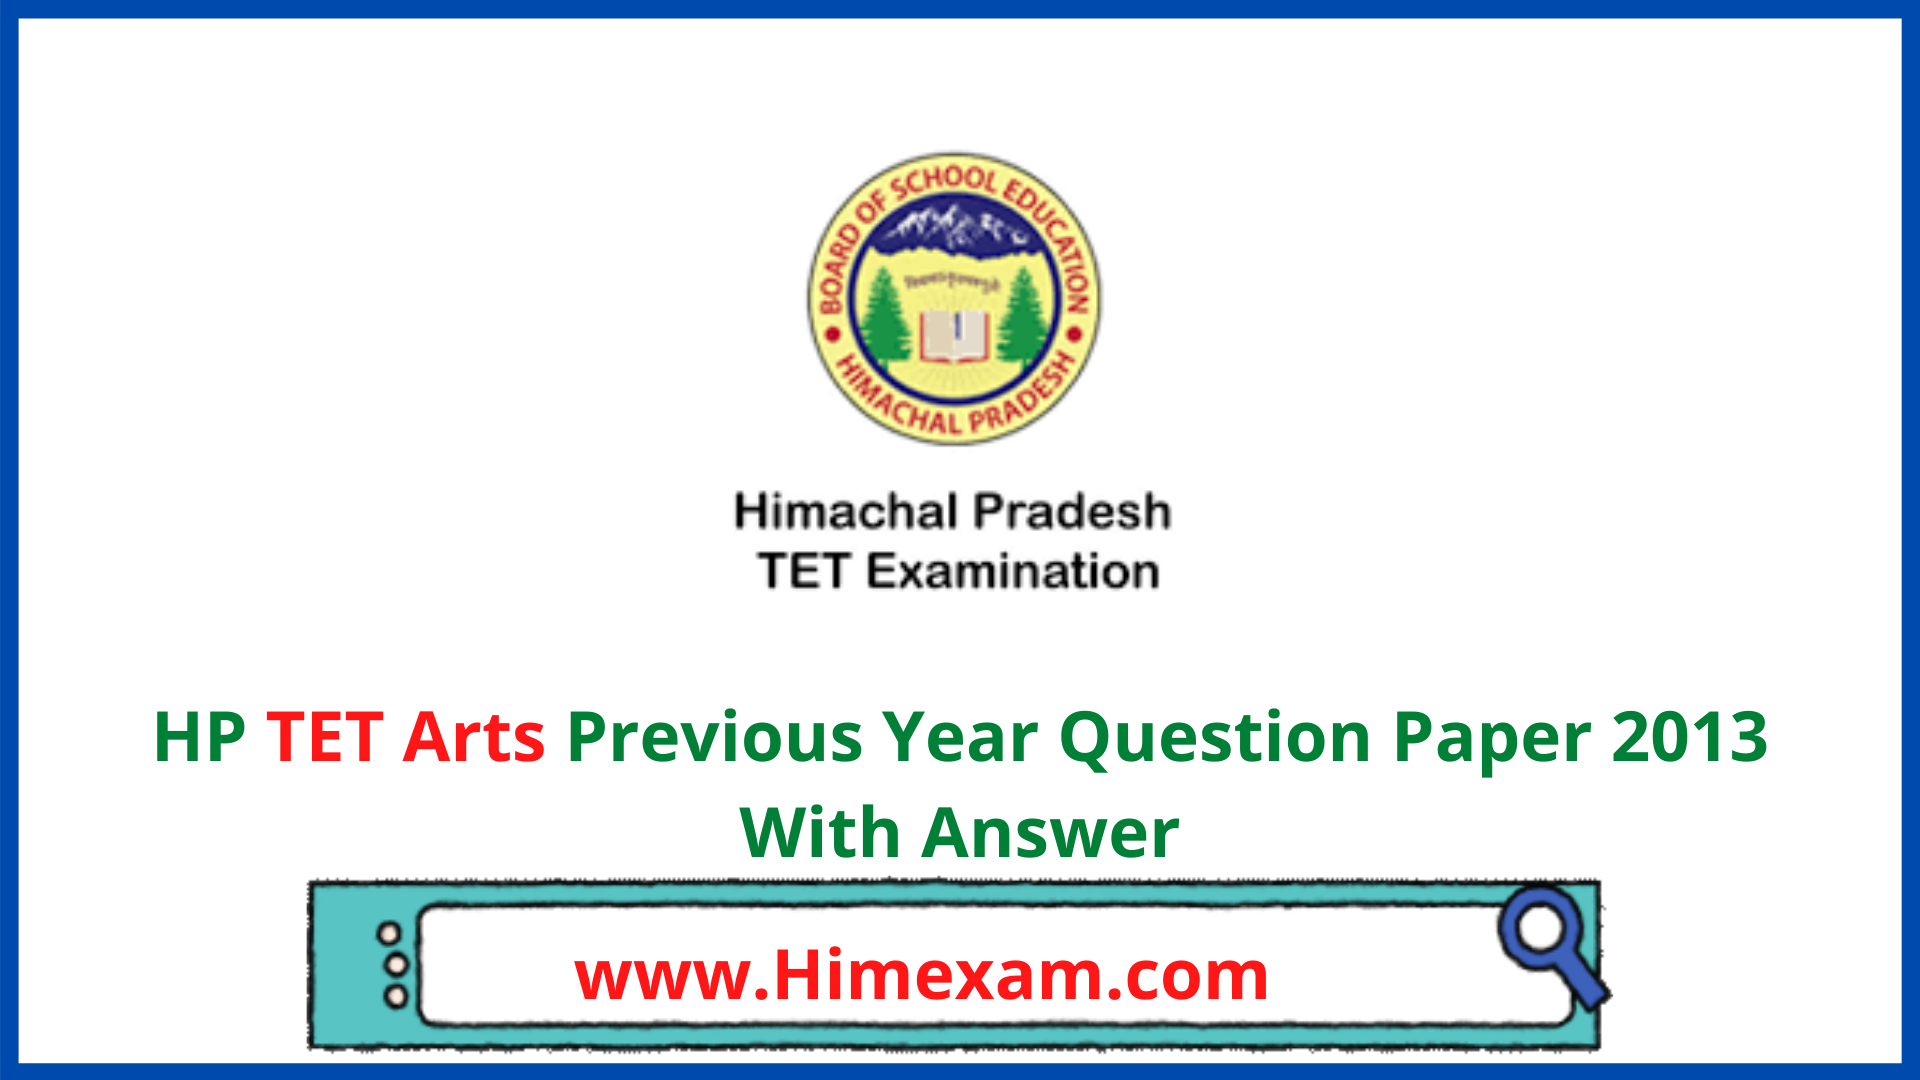 HP TET Arts Previous Year Question Paper 2013 With Answer